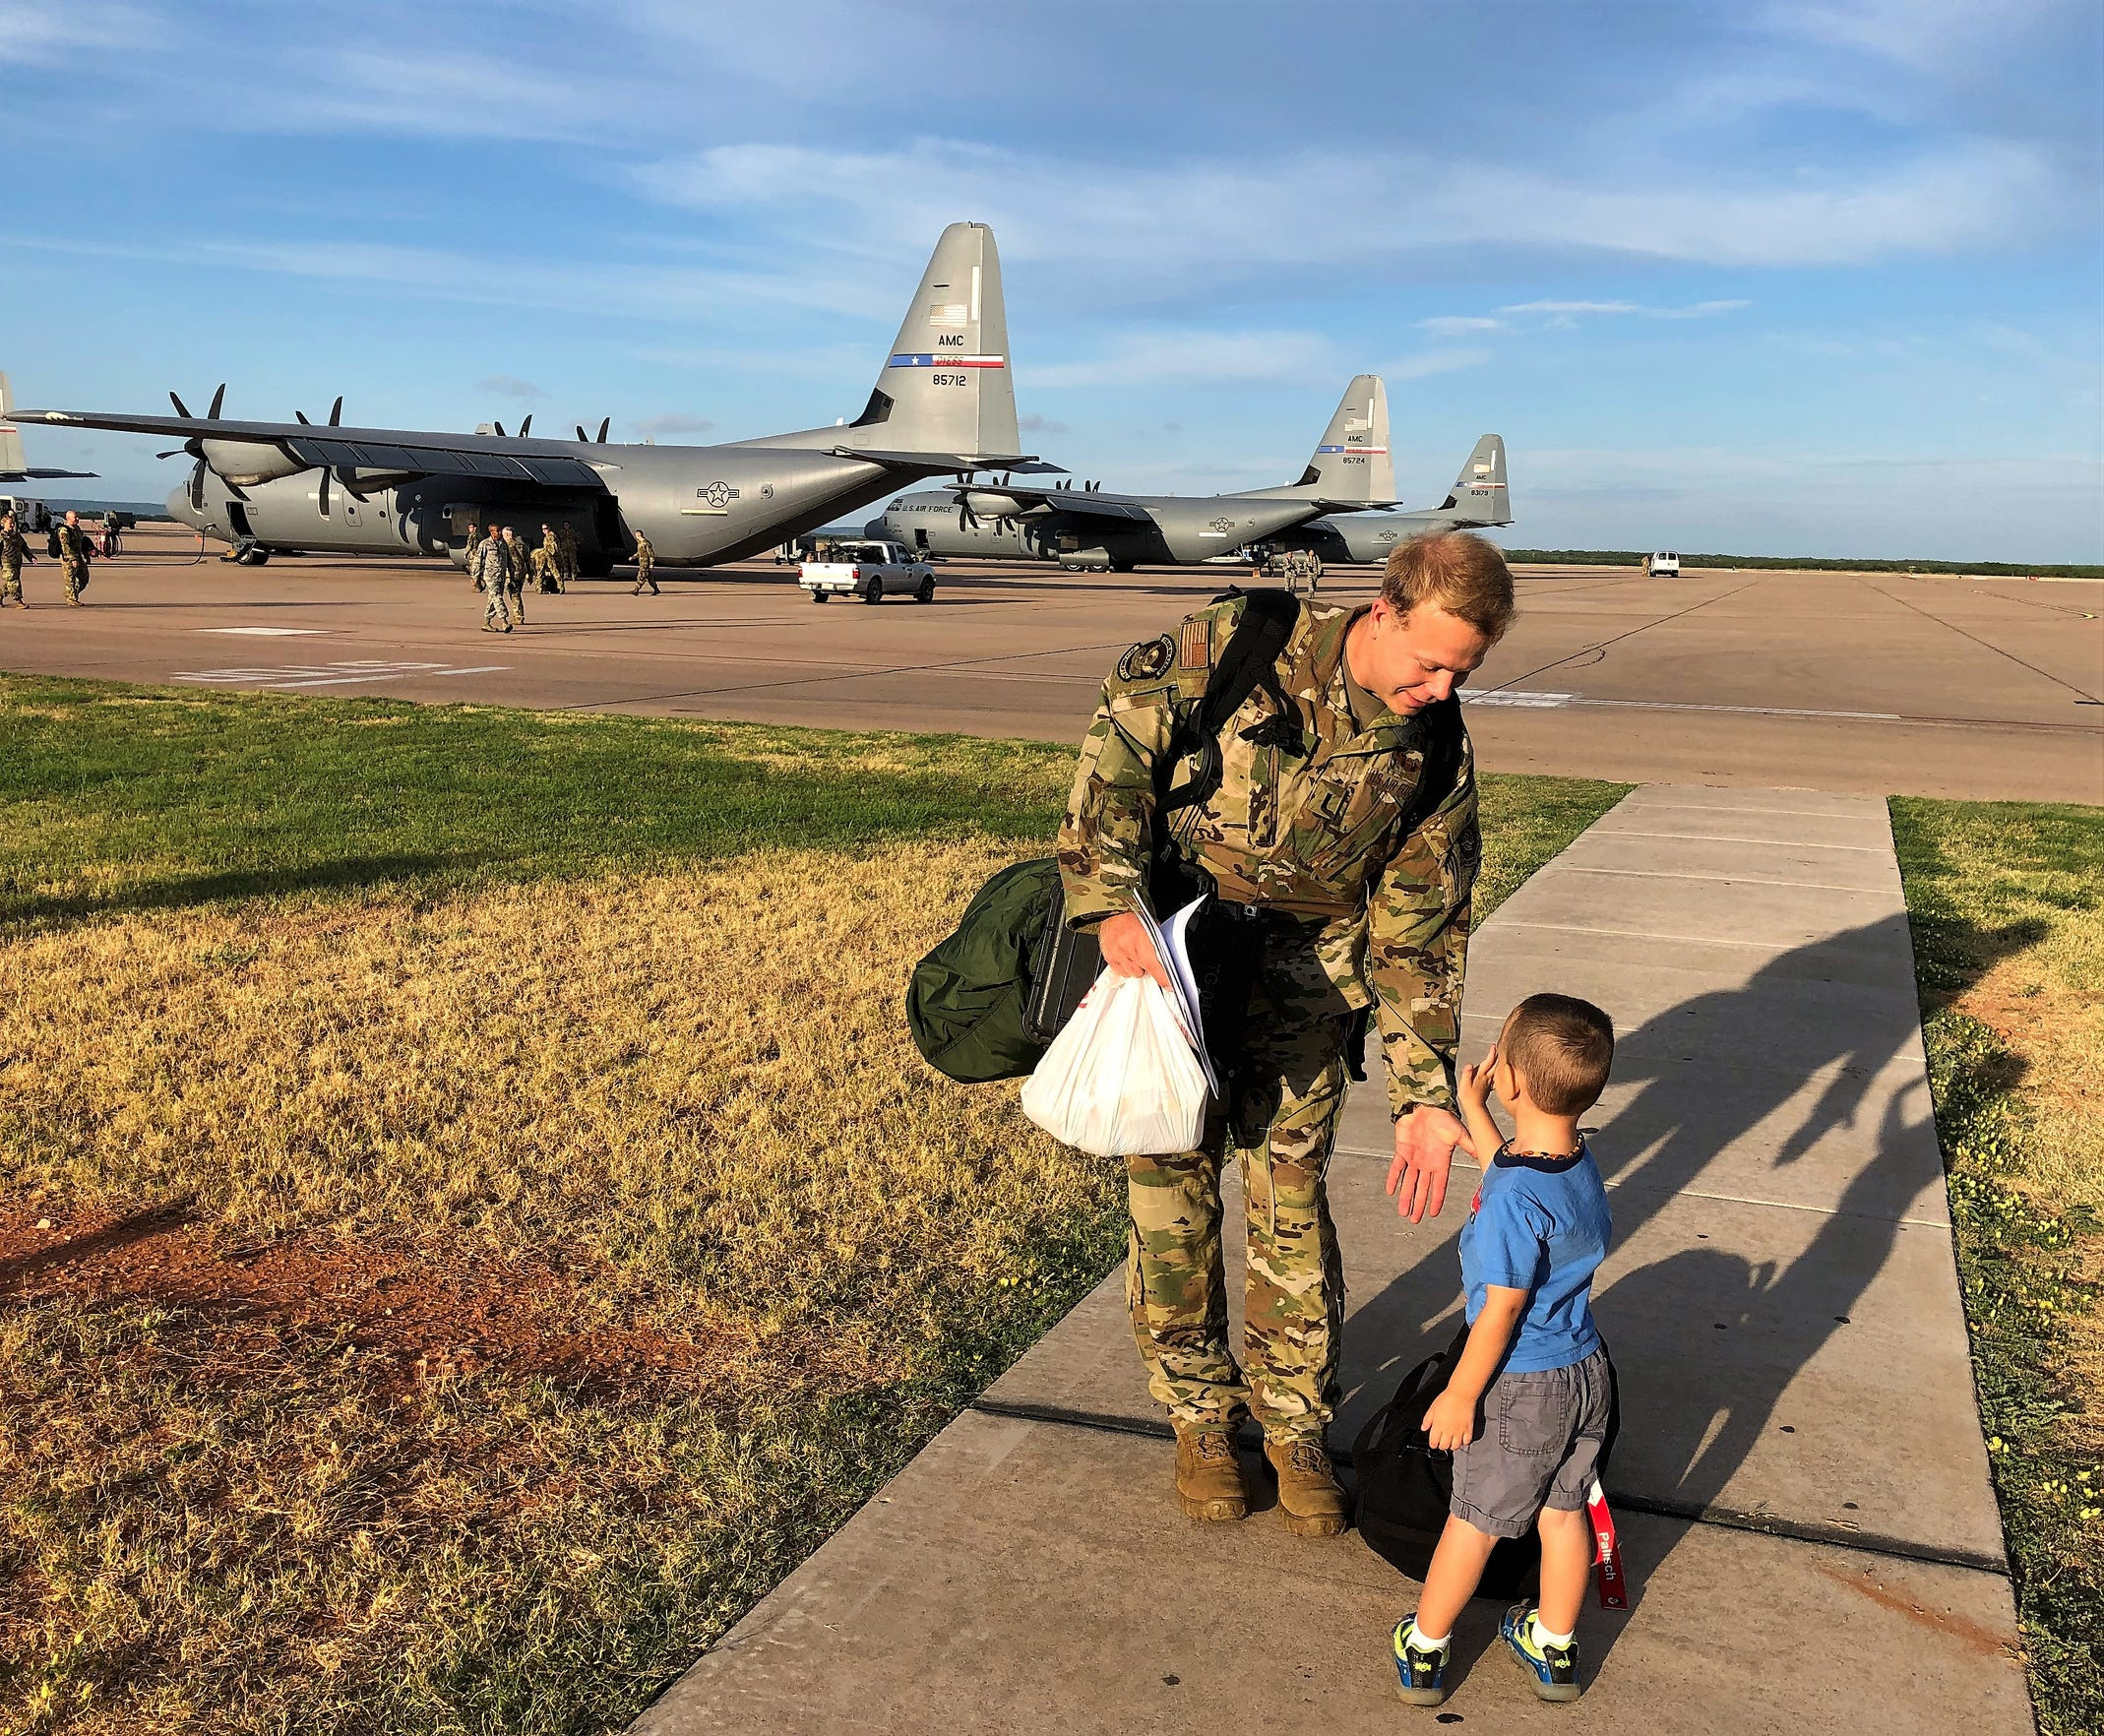 A Dyess Air Force Base airman headed toward his plane drops his bag to accept a high-five from Gregory Fearing, 3, near the edge of the tarmac Sept. 9. The youngster was on duty to wish good luck to airman about to deploy.